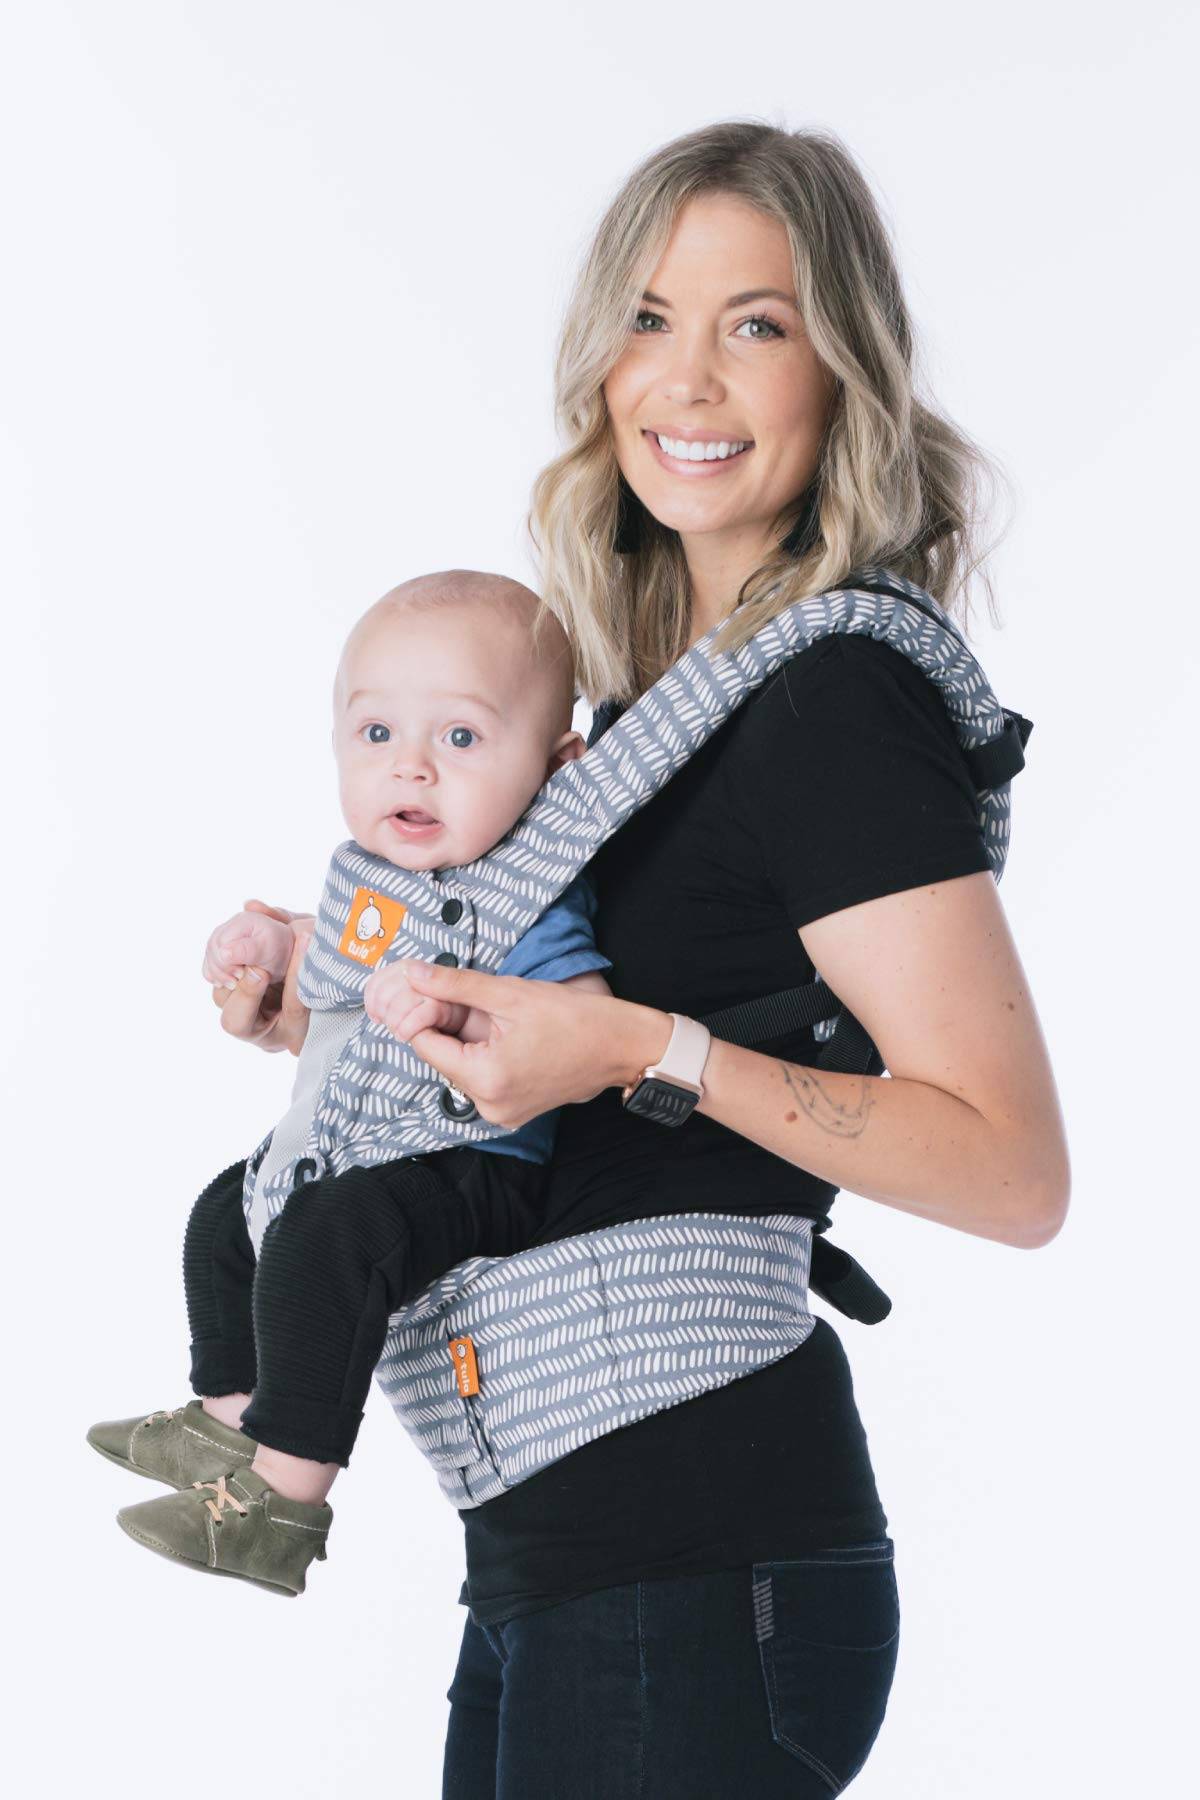 Baby Tula Coast Explore Mesh Baby Carrier 7 – 45 lb, Adjustable Newborn to Toddler Carrier, Multiple Ergonomic Positions Front and Back, Breathable – Coast Beyond, Light Blue with Light Gray Mesh